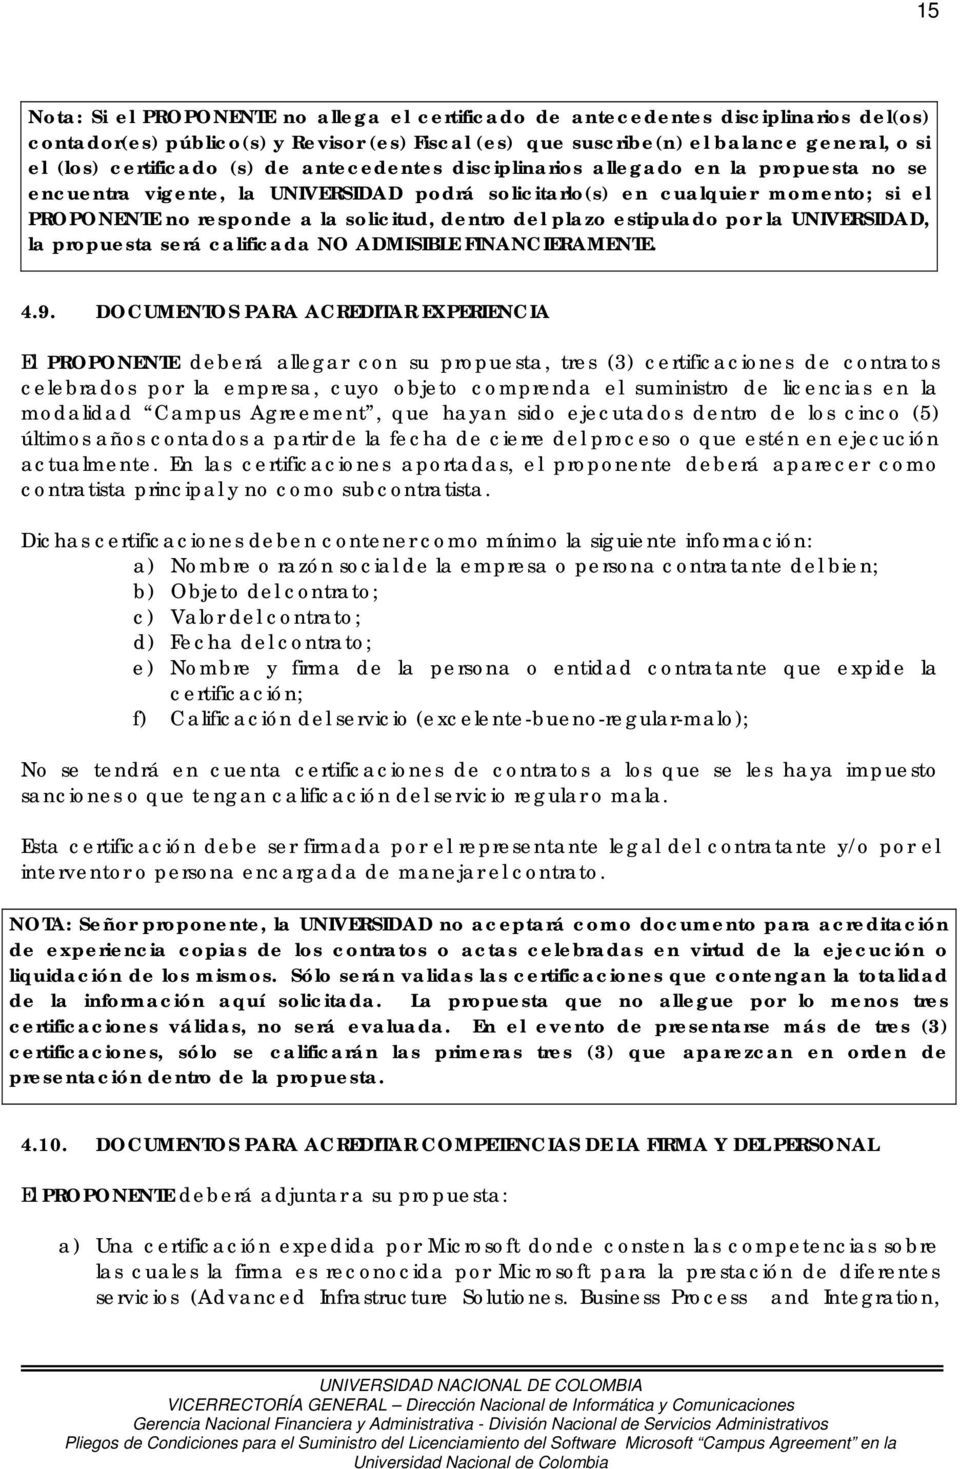 dentro del plazo estipulado por la UNIVERSIDAD, la propuesta será calificada NO ADMISIBLE FINANCIERAMENTE. 4.9.